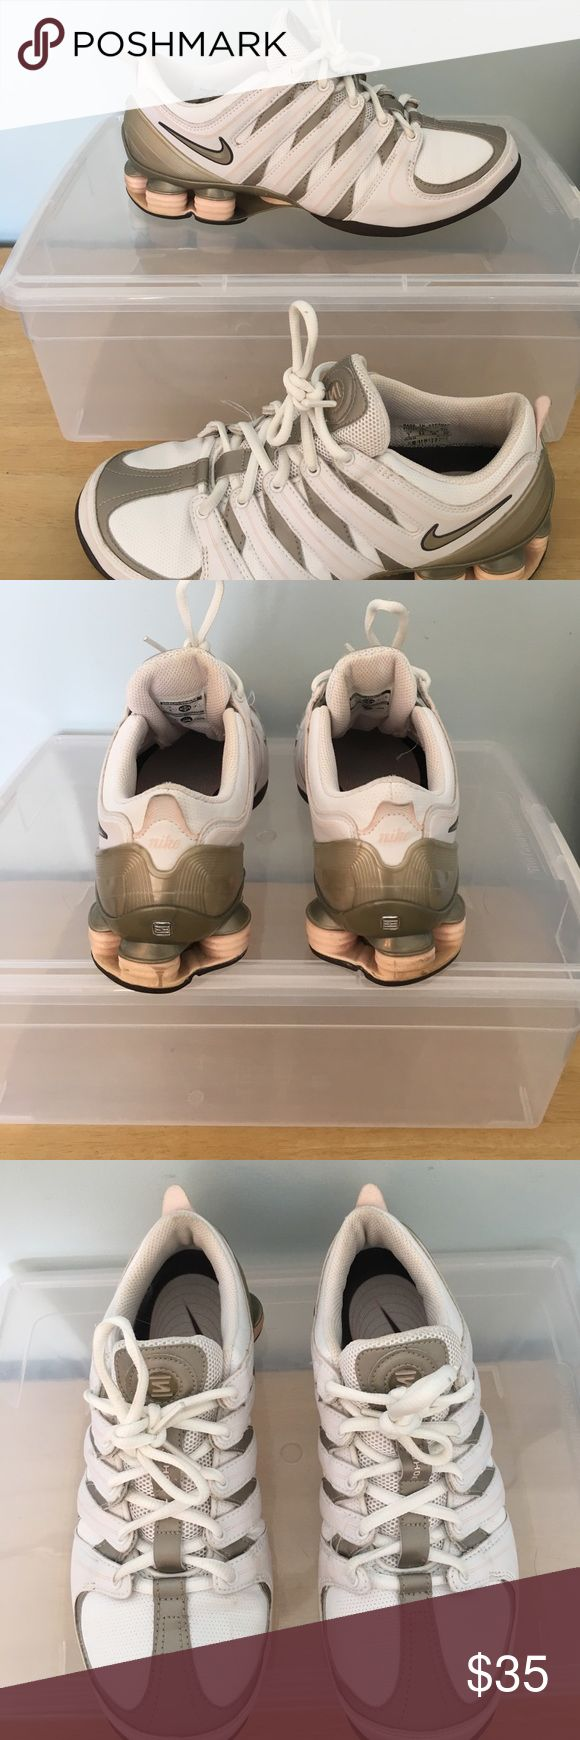 Nike sneakers Pink, white, brown and taupe like color Nike shox. Women's size 7 minimal signs of wear no box non-smoking home Nike Shoes Sneakers